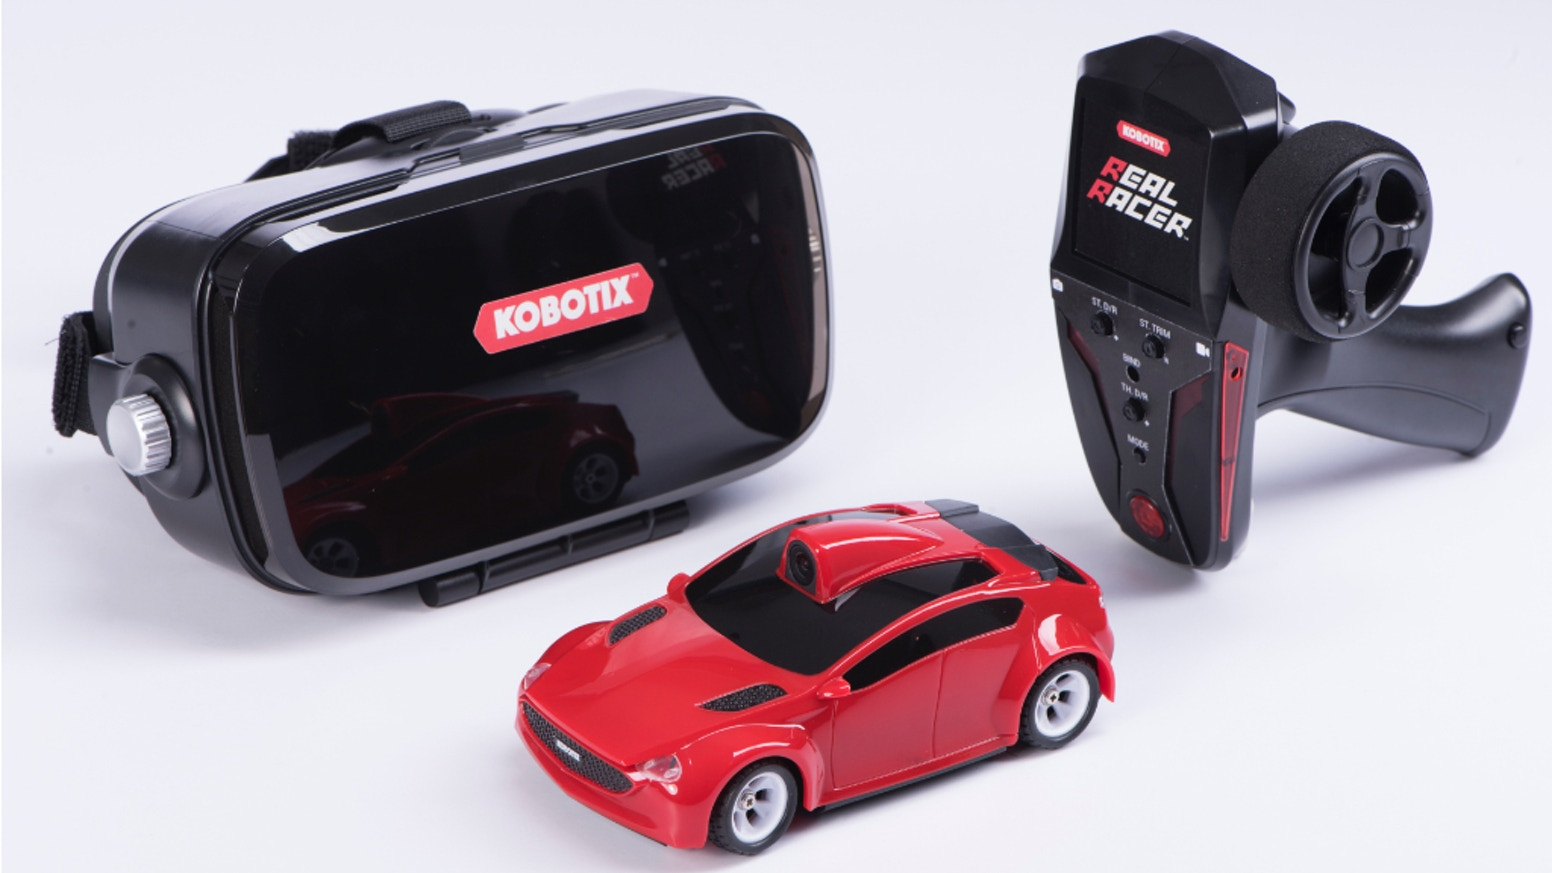 Put yourself in the driver's seat and immerse yourself in the world of Real Racer - the next generation in RC play!